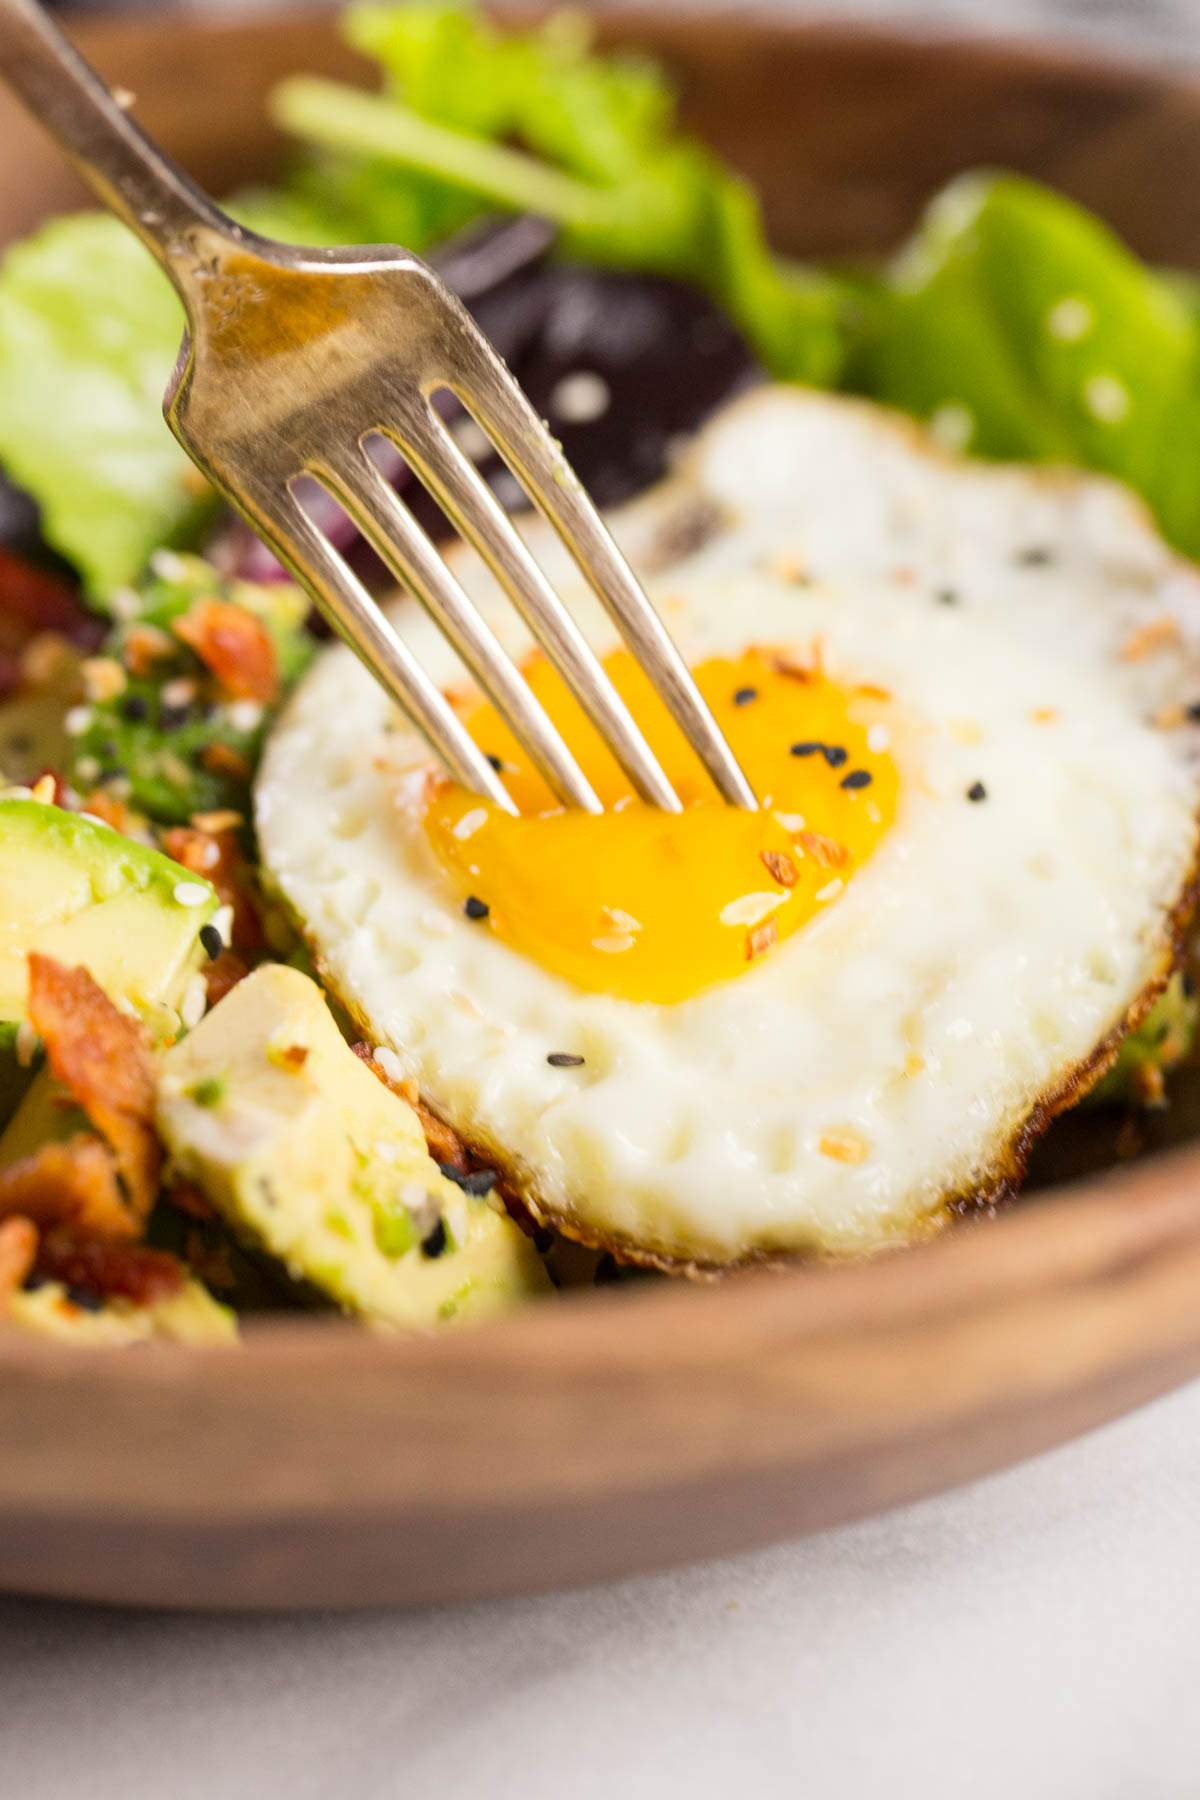 Avocado Breakfast Bowl in a wood bowl with a fork poking into the egg yolk.